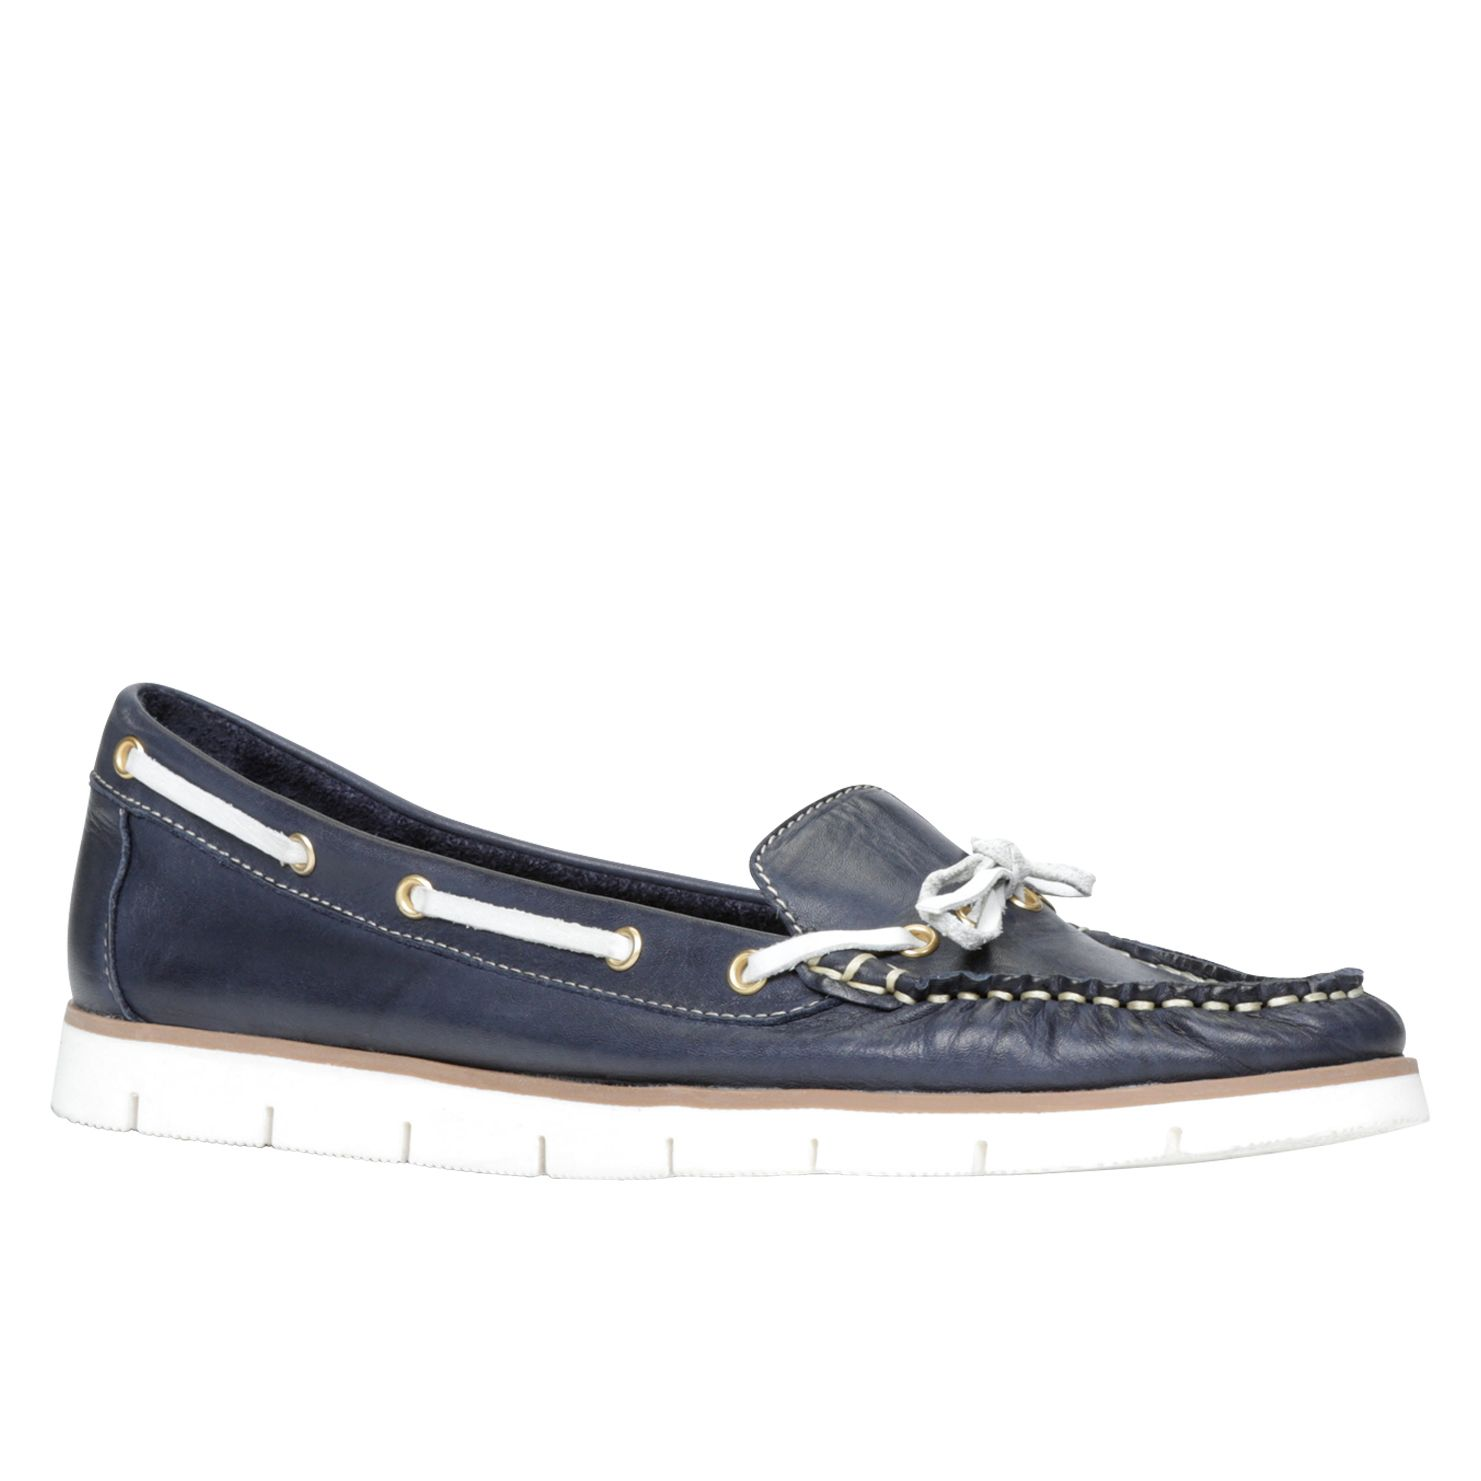 Tunia loafer boat shoes